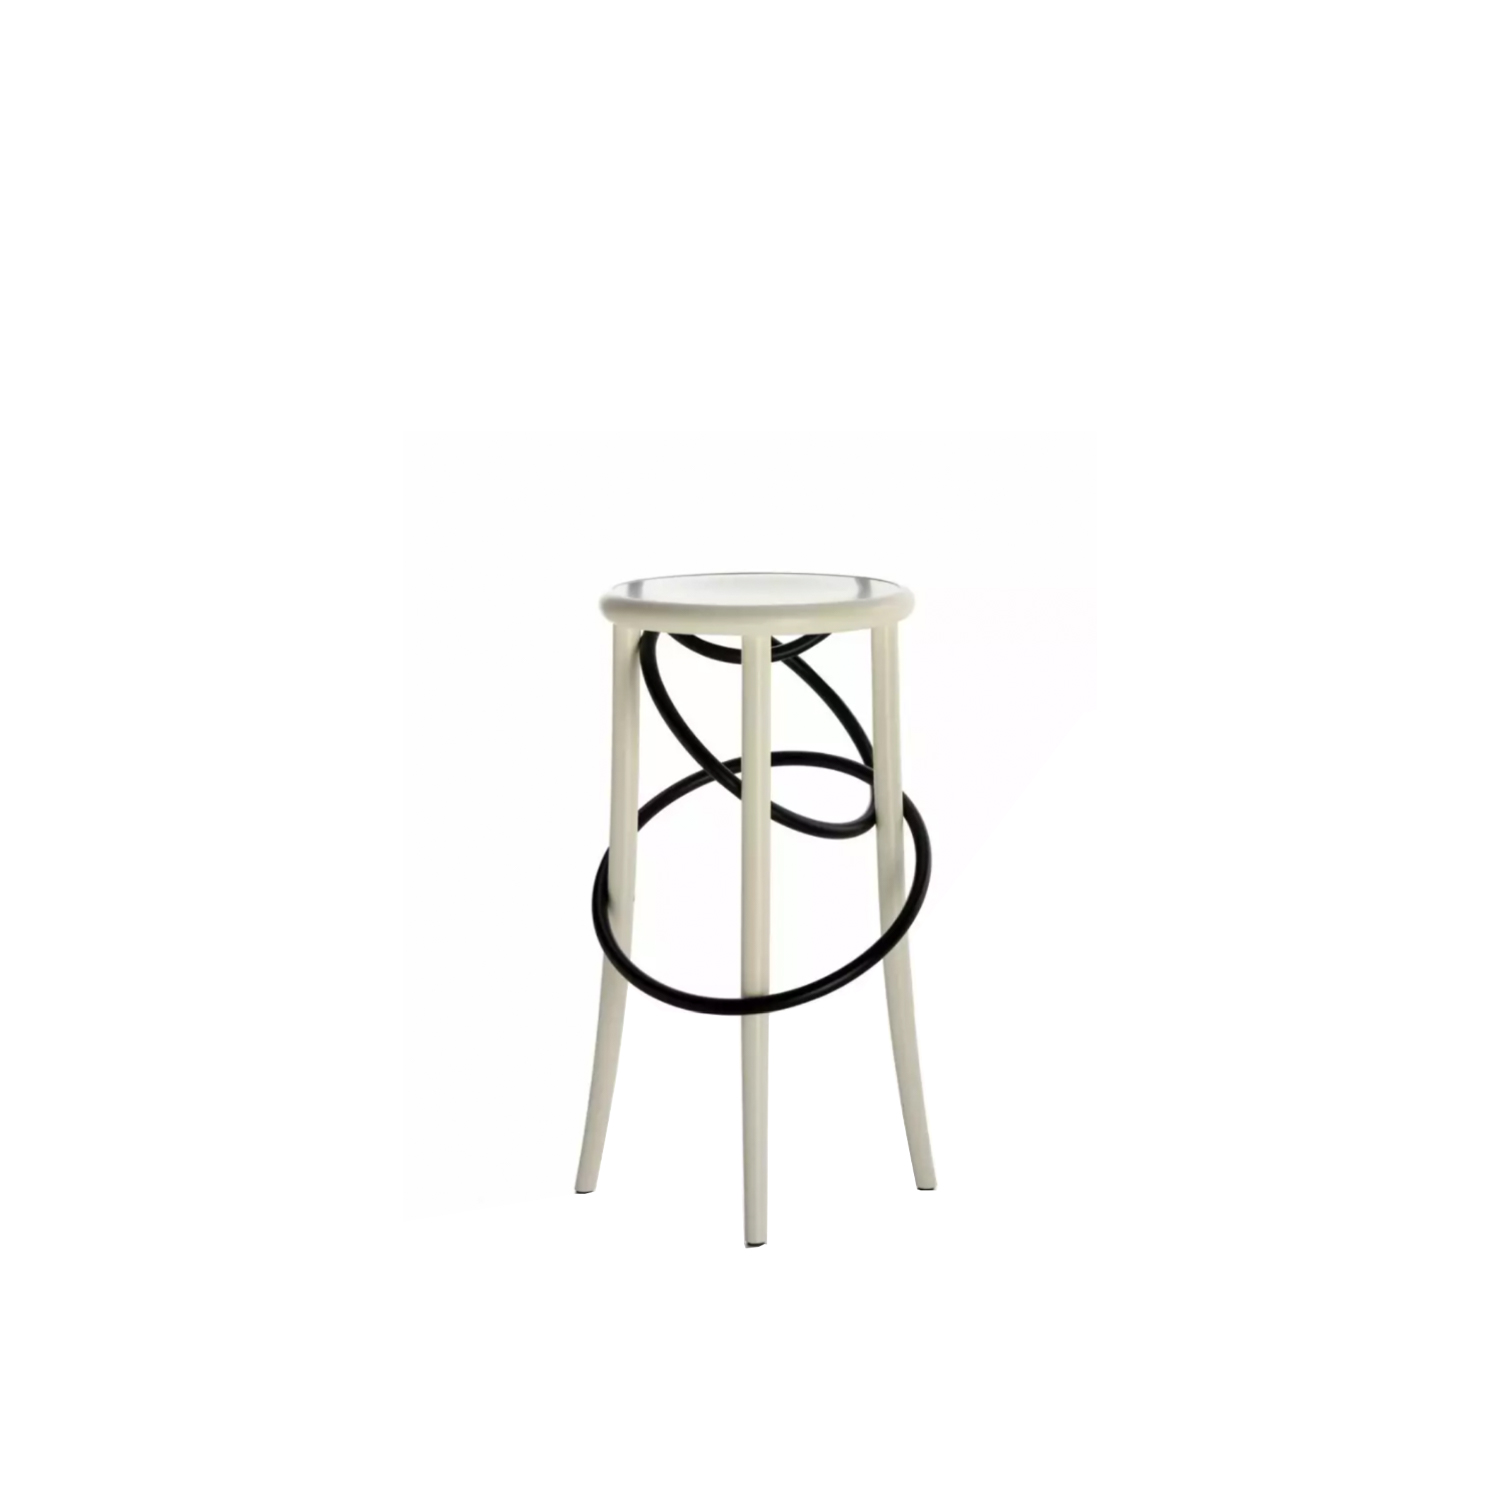 Cirque One Tone Stool - The light and playful circus theme is at the core of the Cirque family of stools designed by Martino Gamper for Wiener GTV Design. The bent element, which is the brand's signature trait, is surprisingly and unexpectedly inserted in the base of the stool, forming the outline of the seat in the form of a chain comprising two or three wooden rings that loop around the full length of the stool legs. This striking styling effect blends in seamlessly with the functionality of the seat, which is available in two heights: a tall, sleek stool with or without backrest, Cirque L and Cirque M, and the stable and well-proportioned low stool, Cirque S. Also available in an original version with rings in a brass finish. | Matter of Stuff